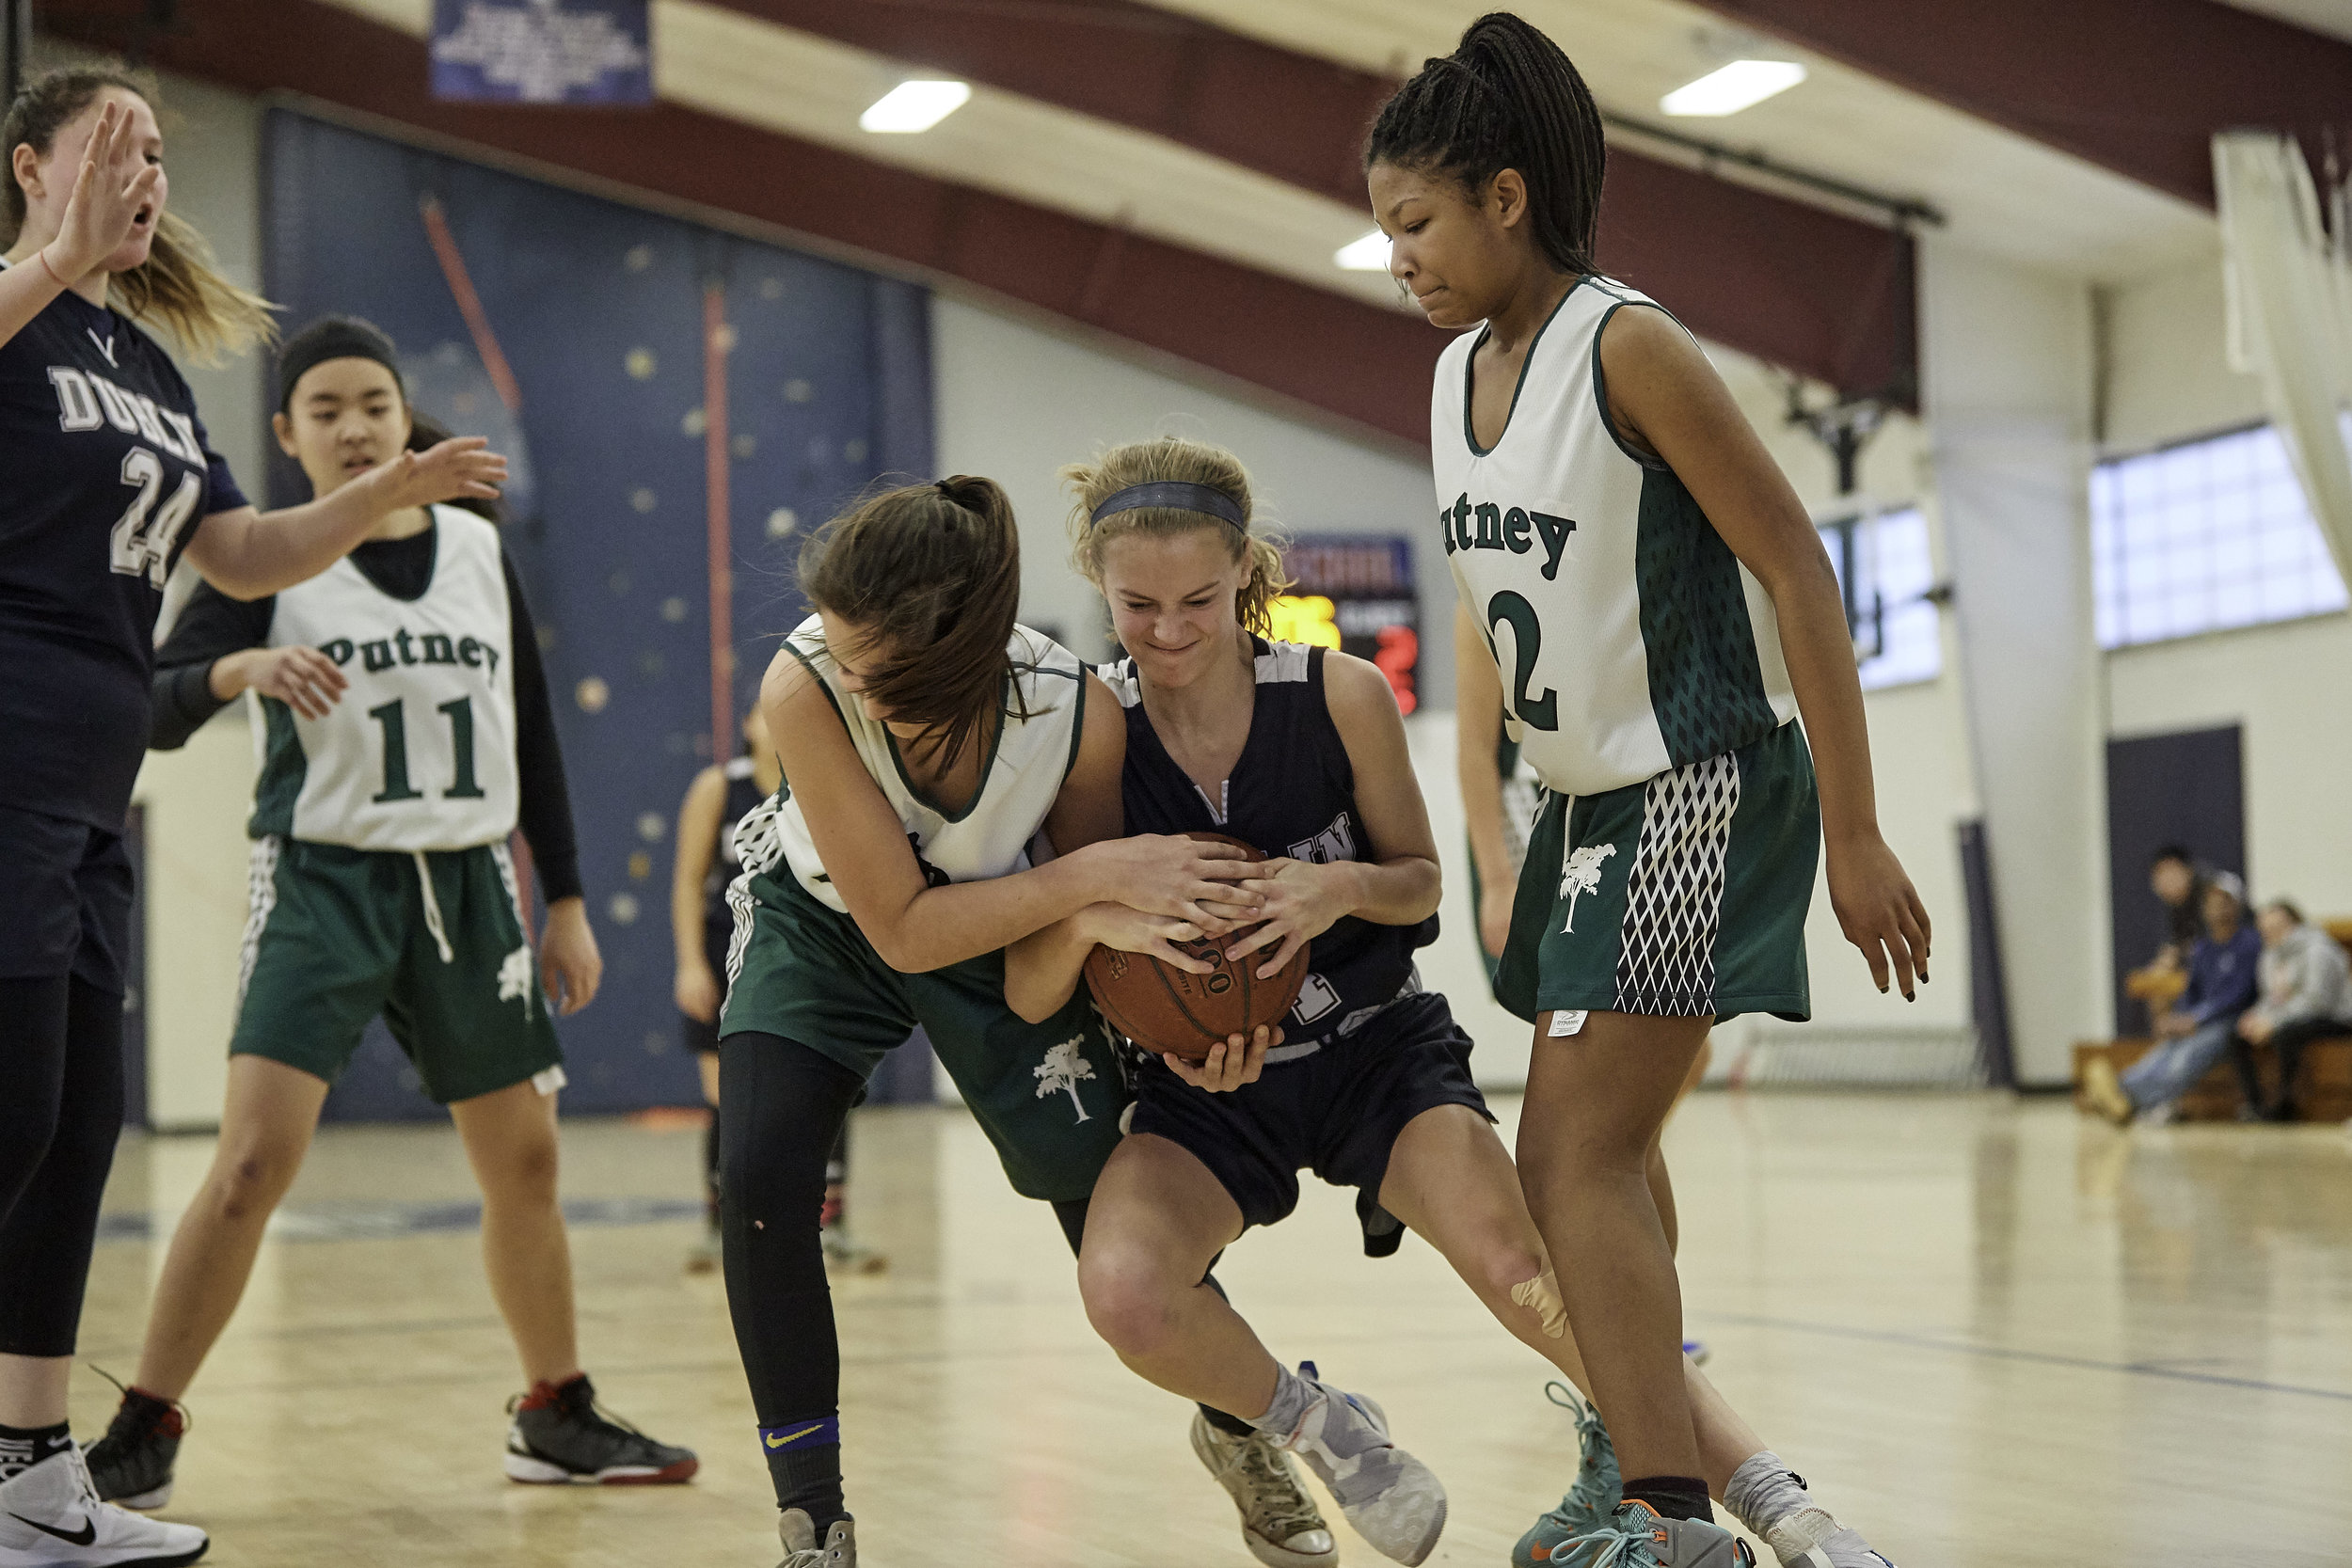 Basketball vs Putney School, February 9, 2019 - 167285.jpg